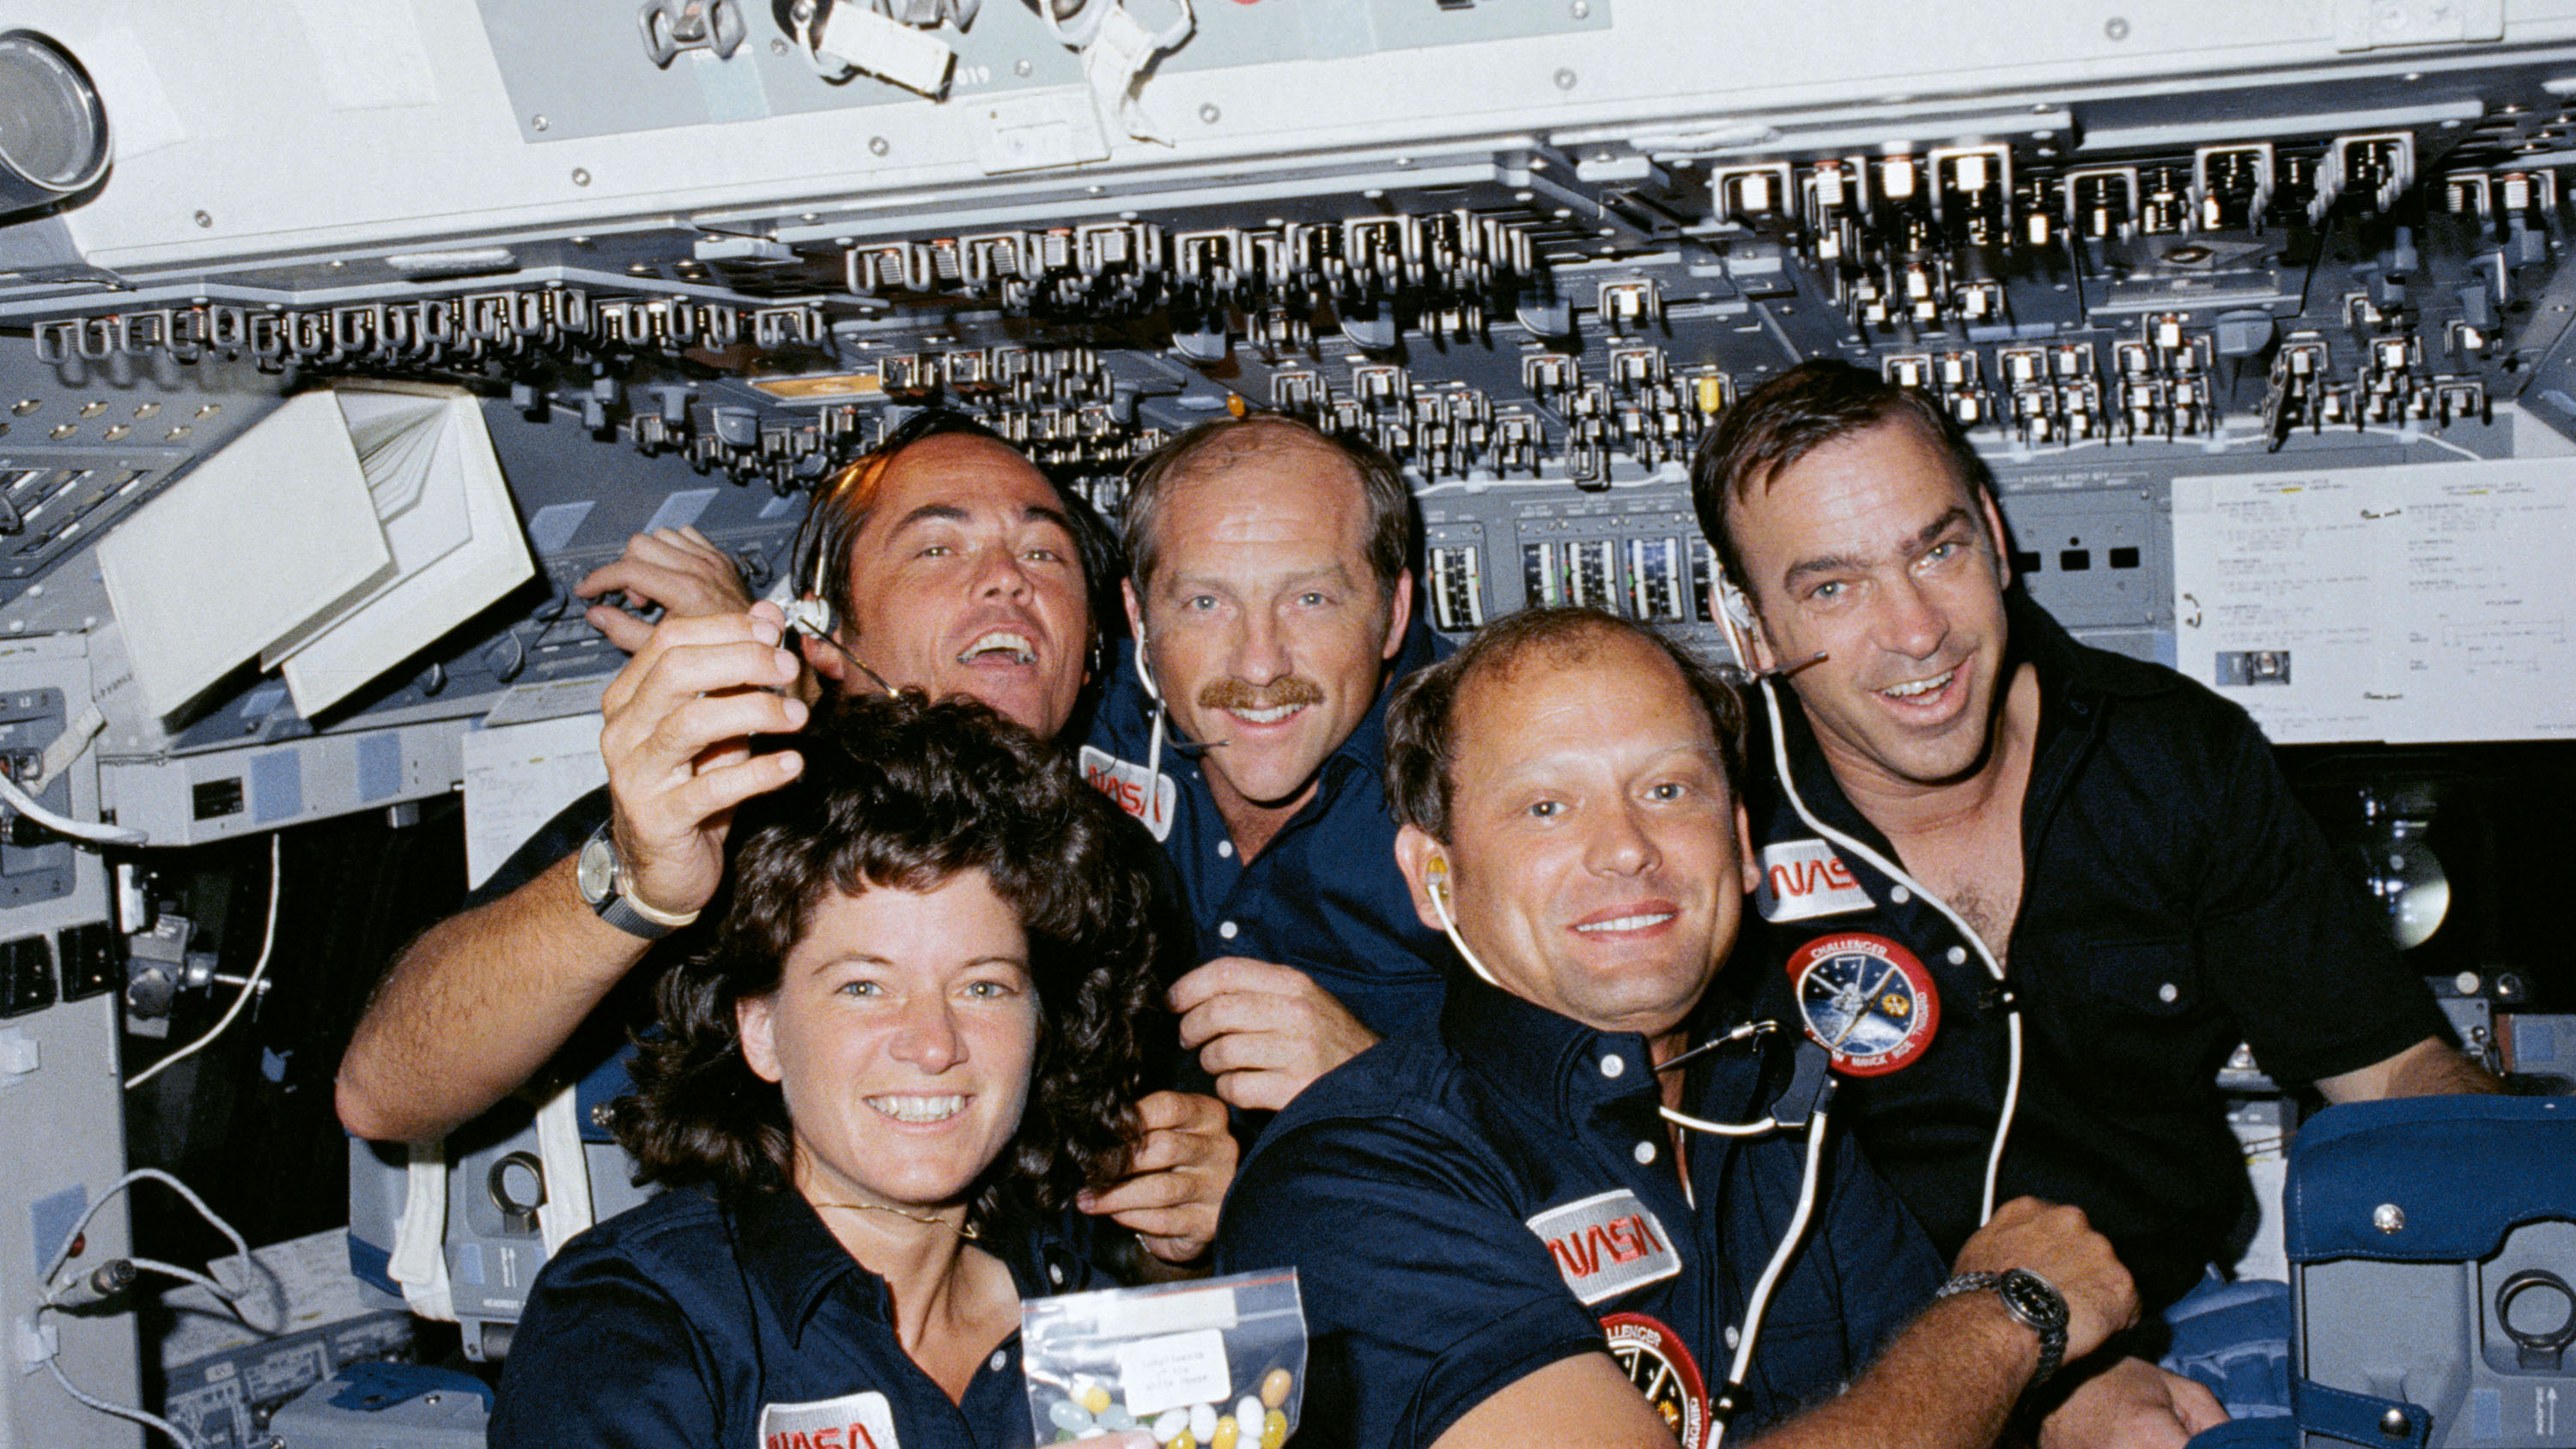 Space Shuttle Challenger's STS-7 crew poses for a group portrait on the forward flight deck. Left to right are Mission Specialist Sally Ride, Commander Robert Crippen, Pilot Frederick Hauck, Mission Specialist Norman Thagard and Mission Specialist John Fabian. (Credit: NASA)